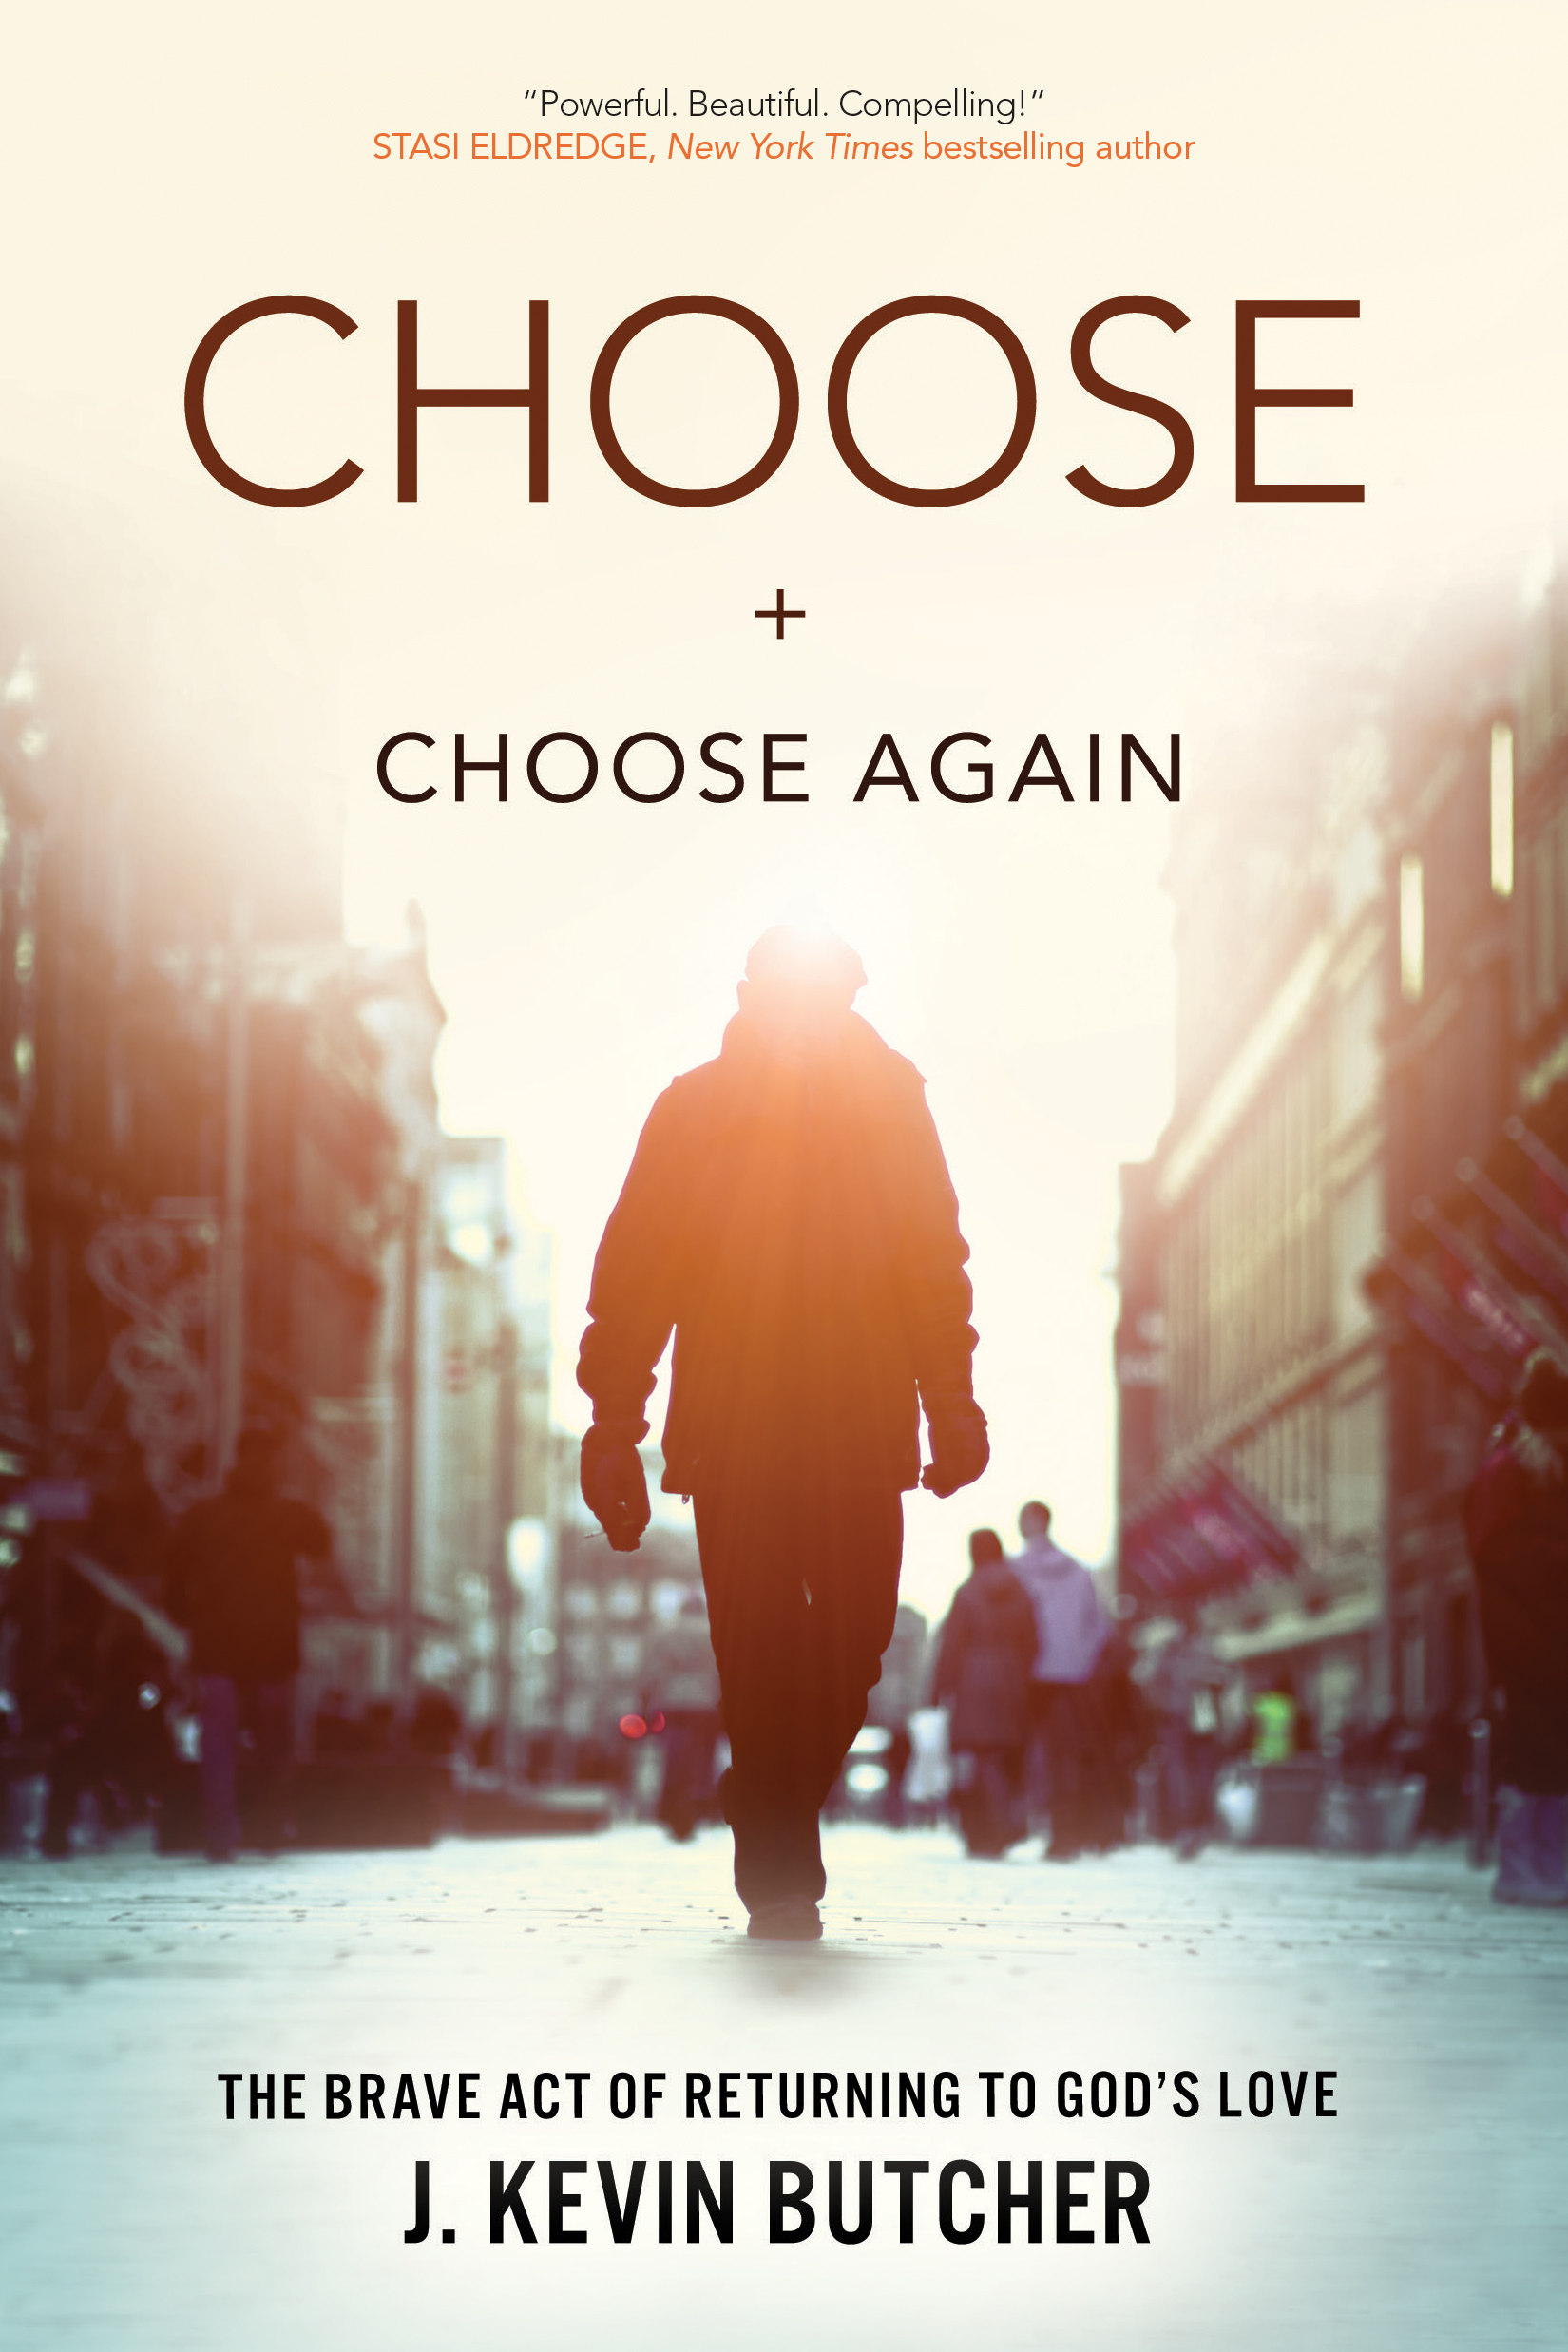 Cover of Choose and Choose Again, by J. Kevin Butcher